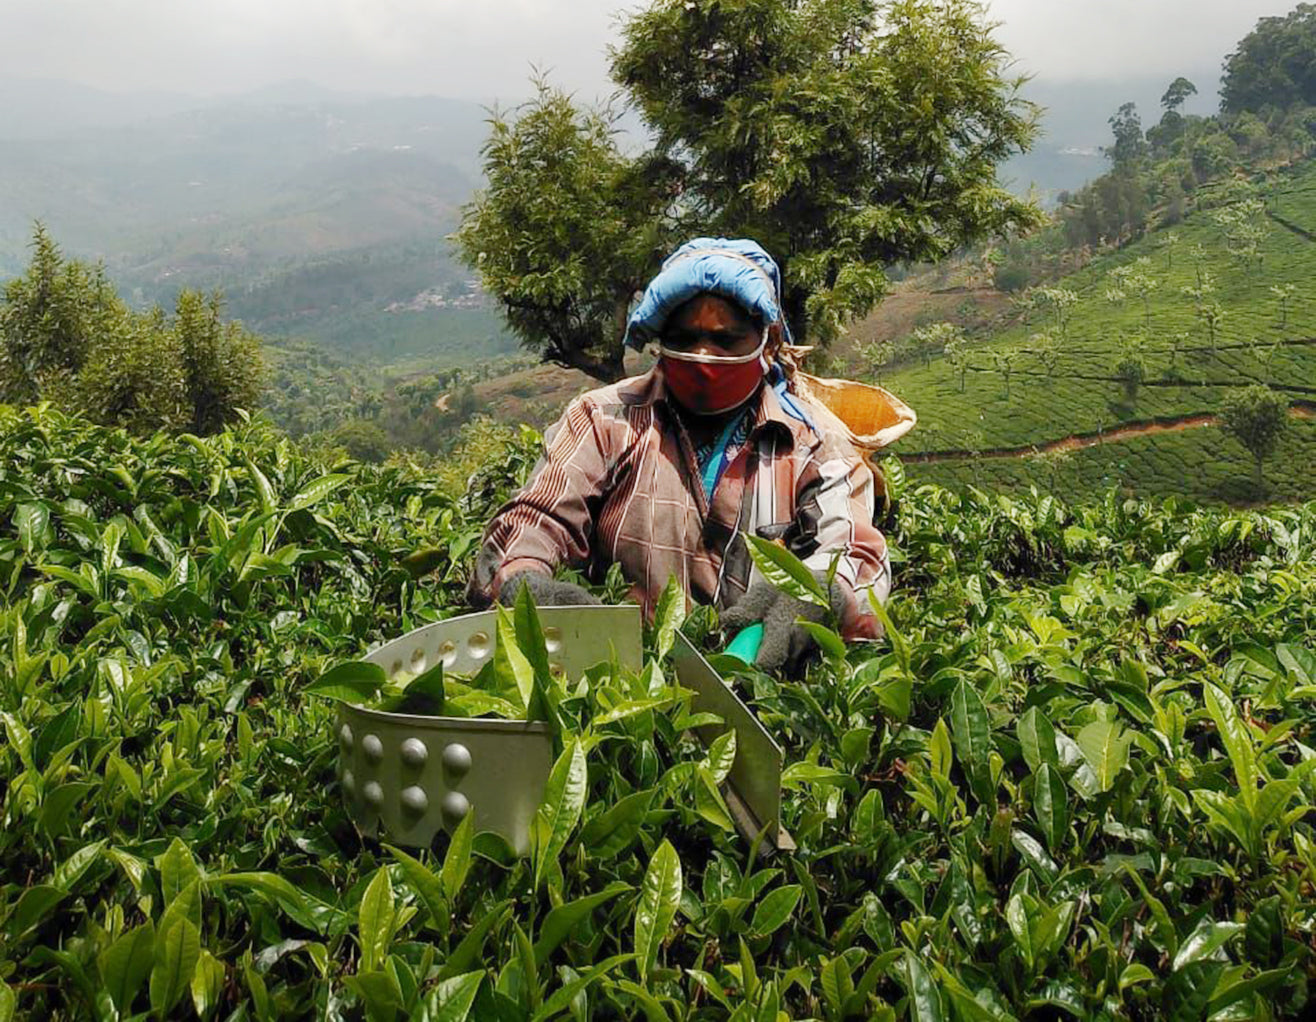 Tea picker in tea garden